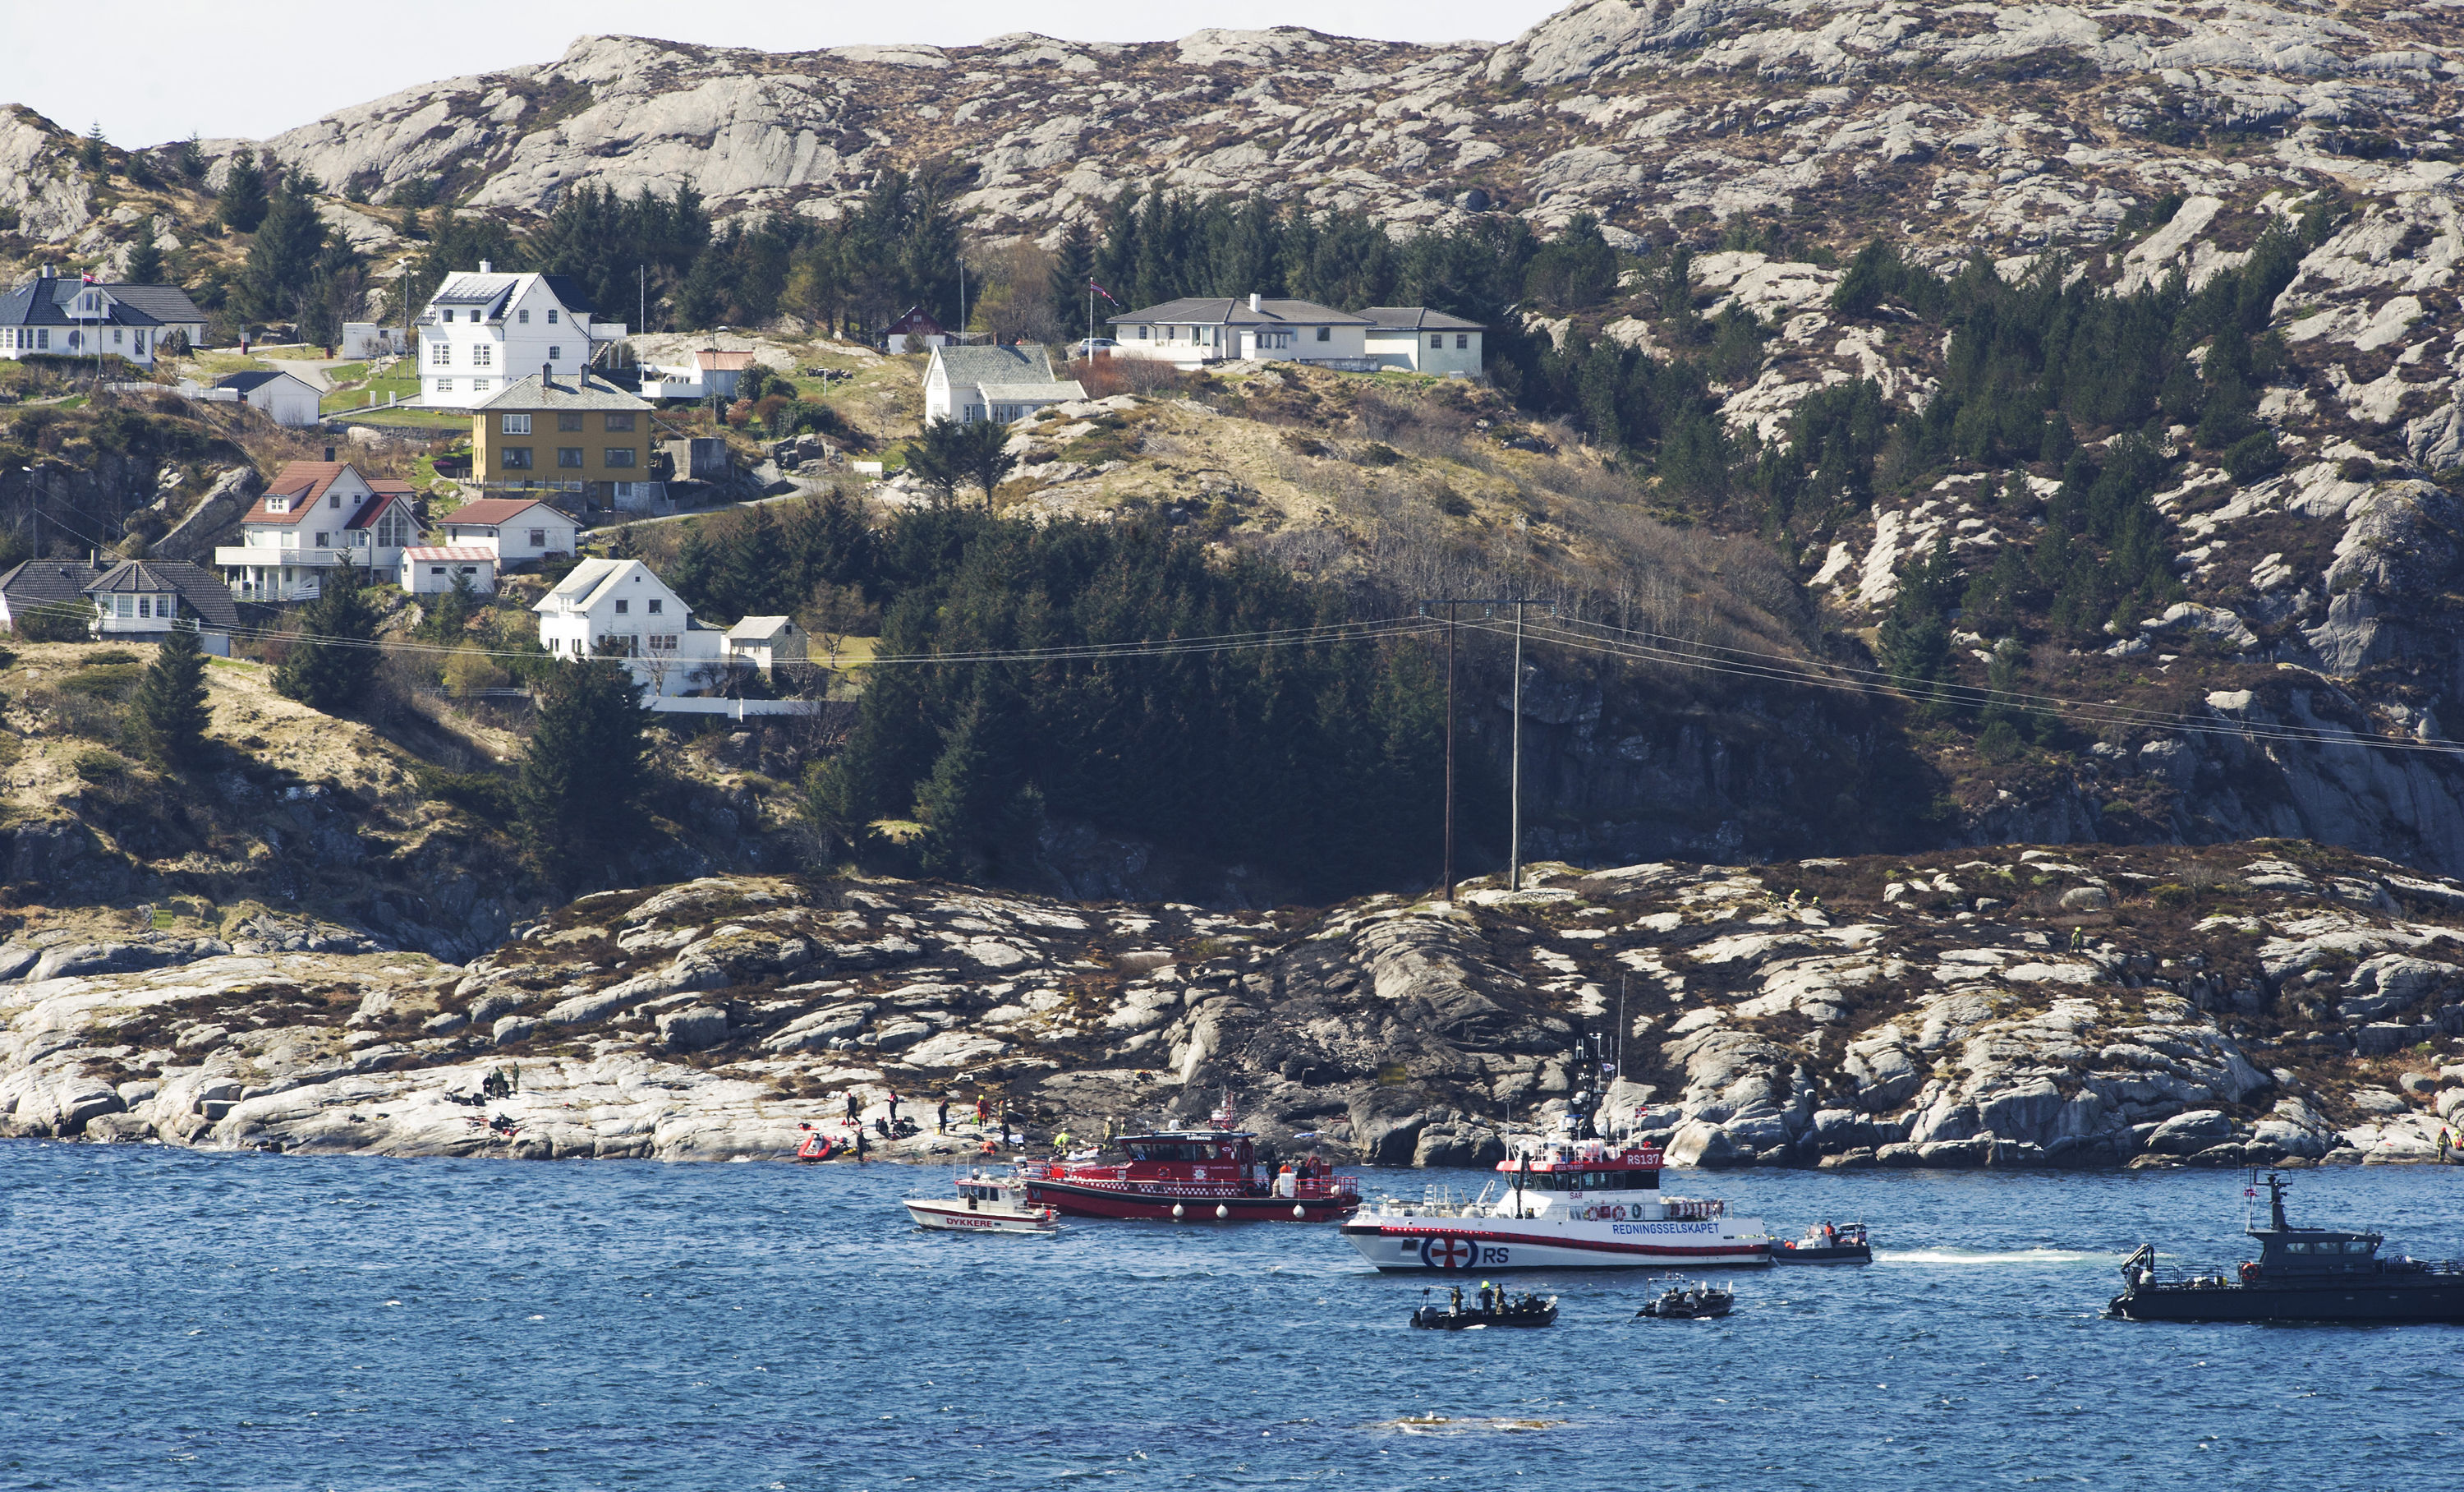 A search and rescue vessel patrols off the island of Turoey in Norway.